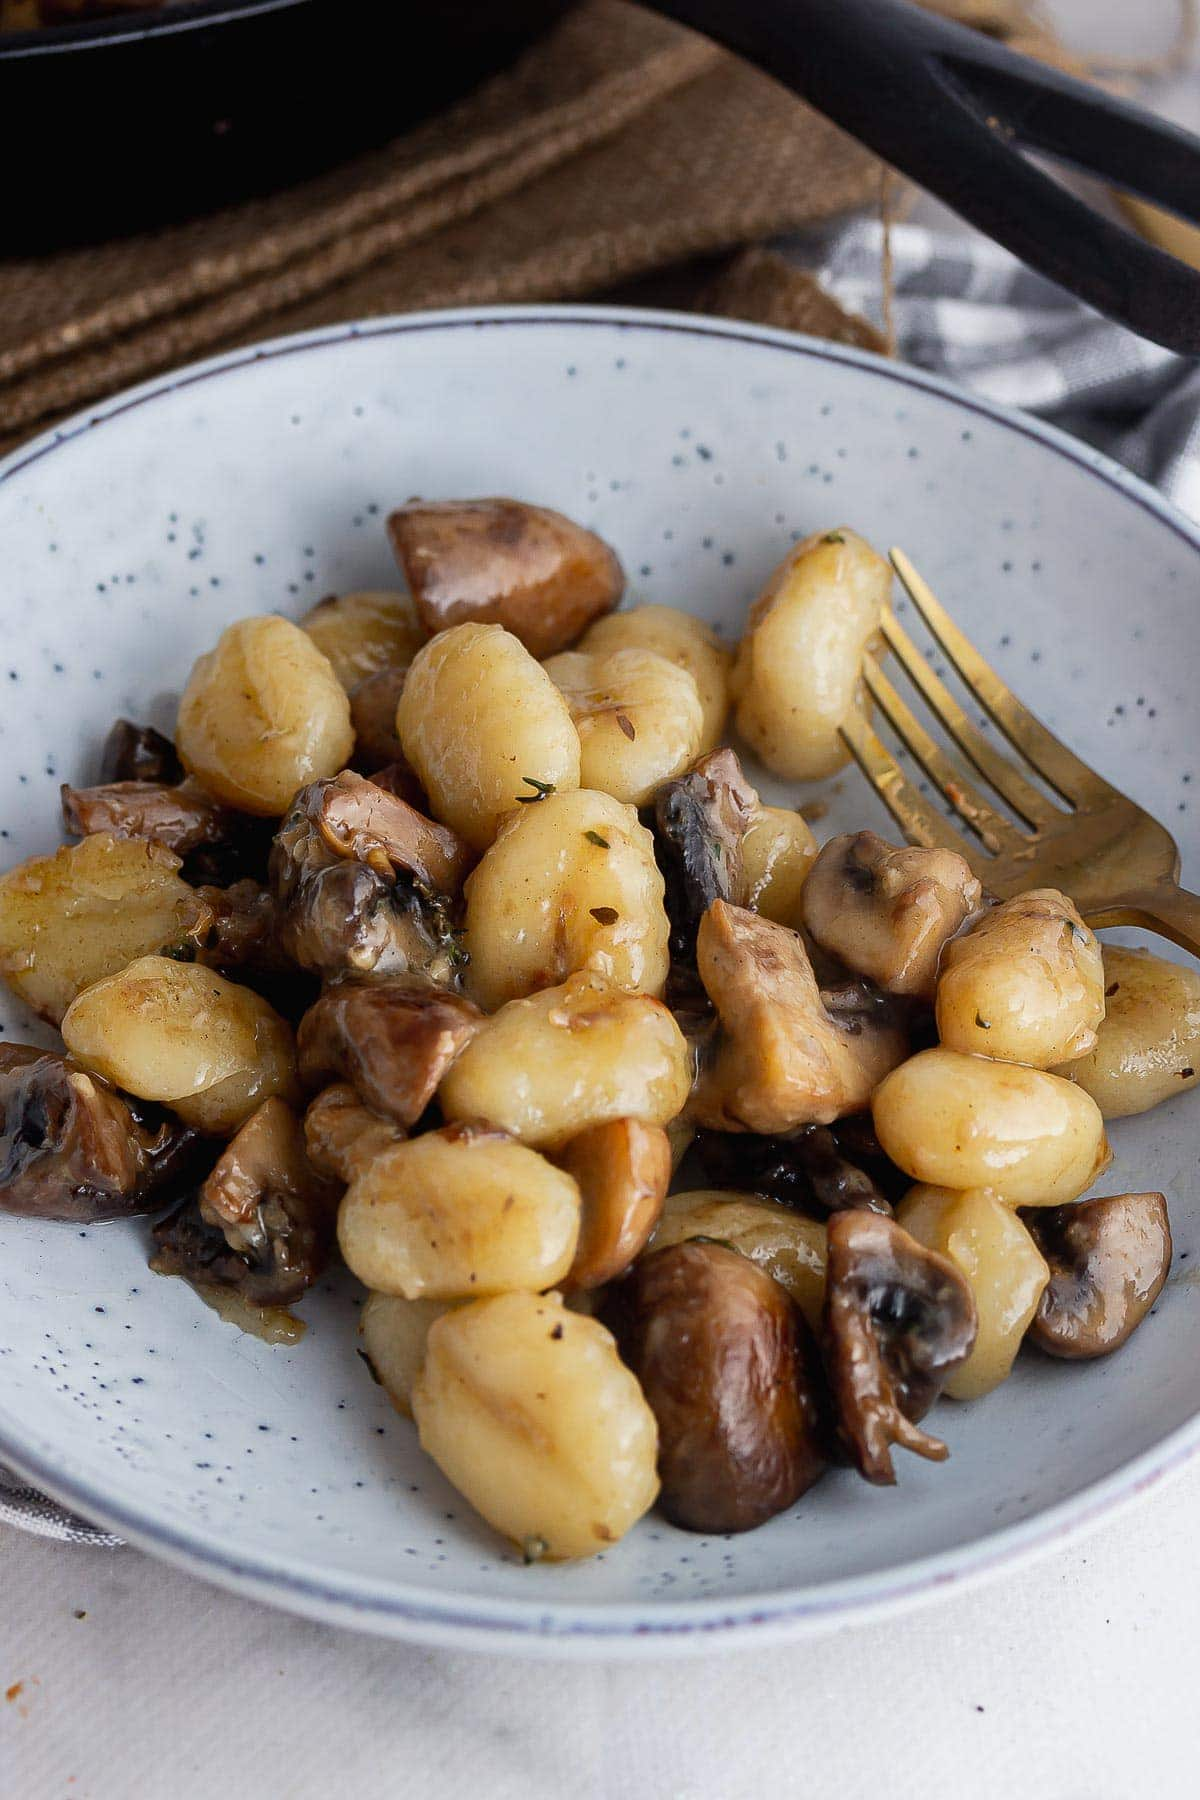 Blue bowl of mushroom and gnocchi with a gold fork